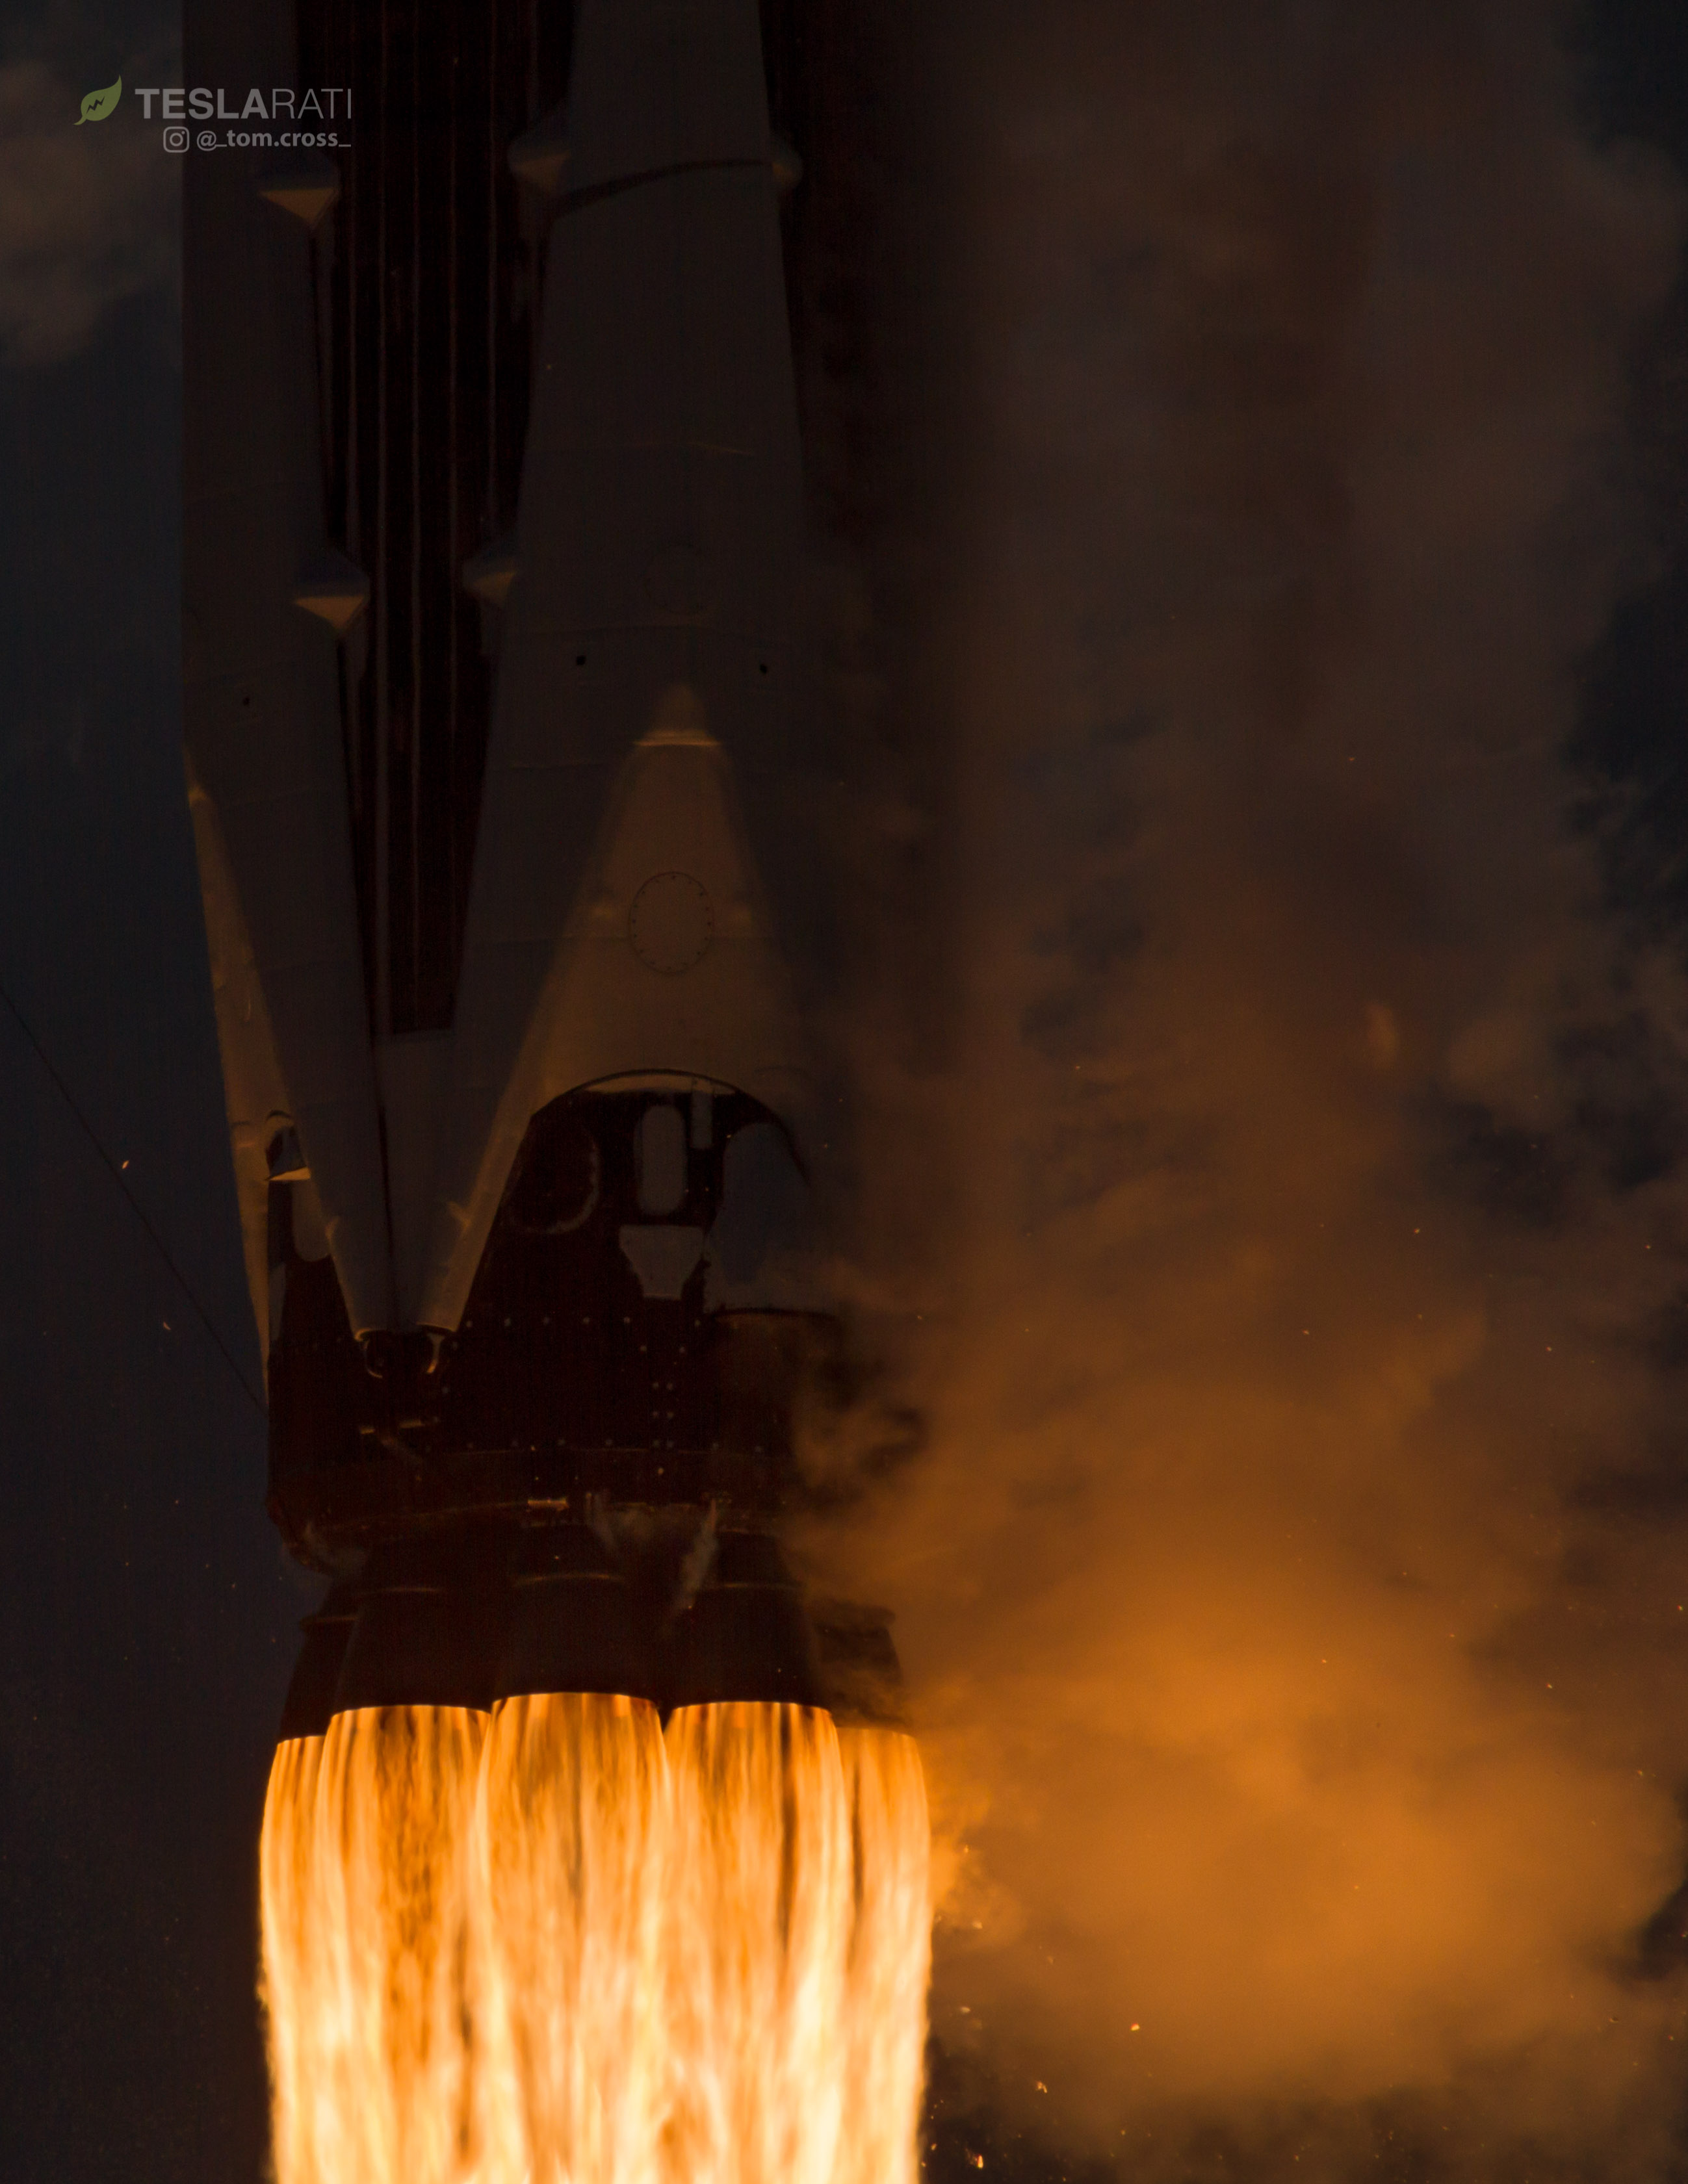 1039 CRS14 launch closeup 3 (Tom Cross)